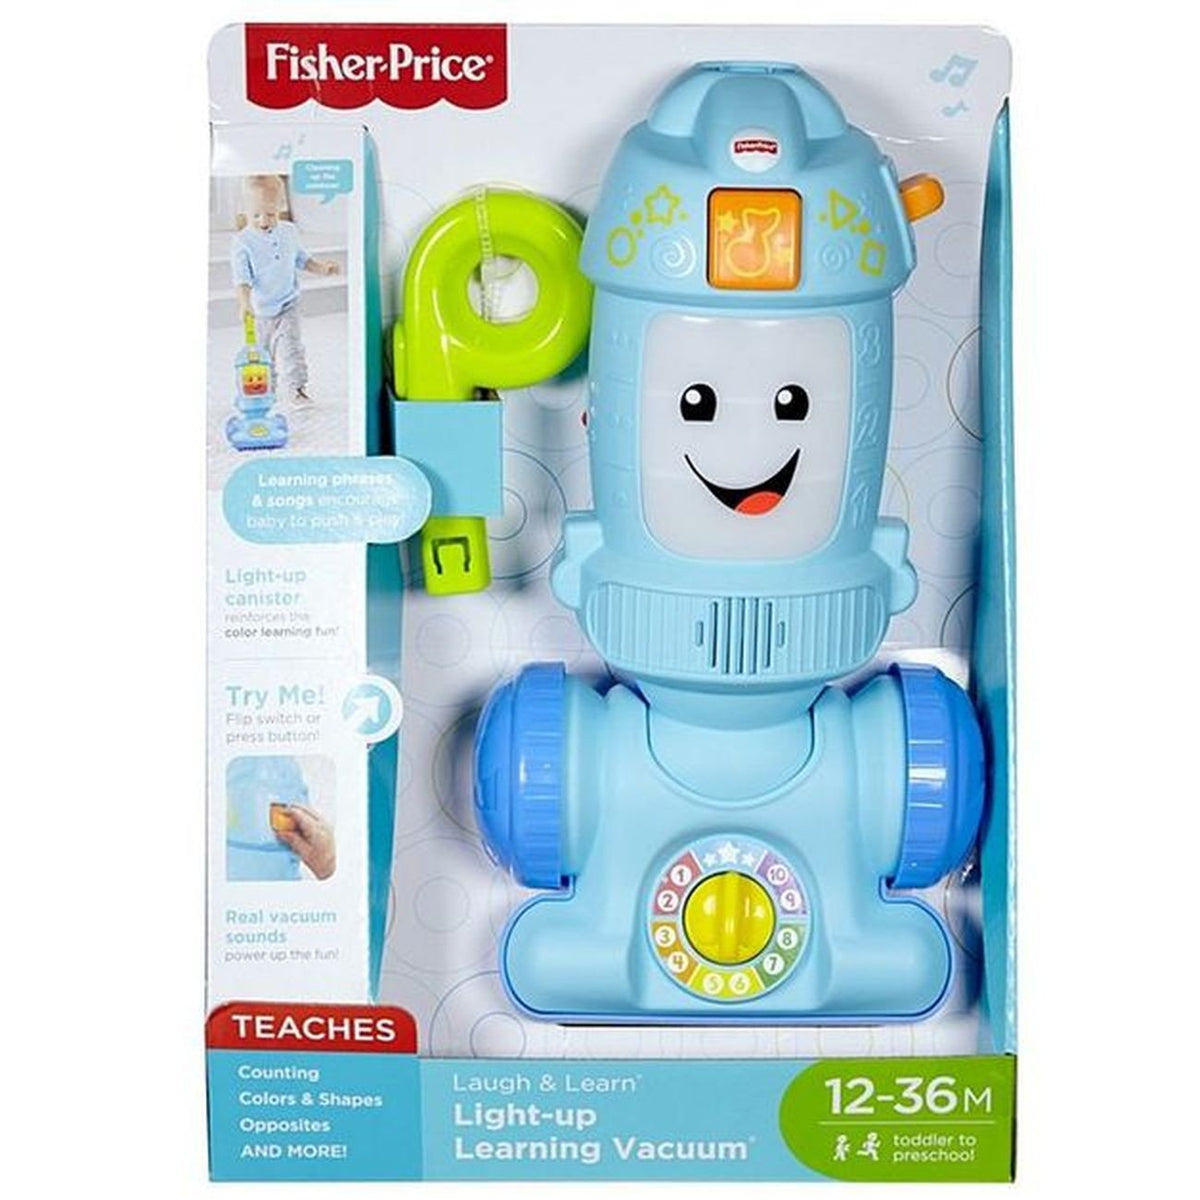 LAUGH & LEARN LIGHT-UP LEARNING VACUUM | FISHER PRICE | Toyworld Frankston